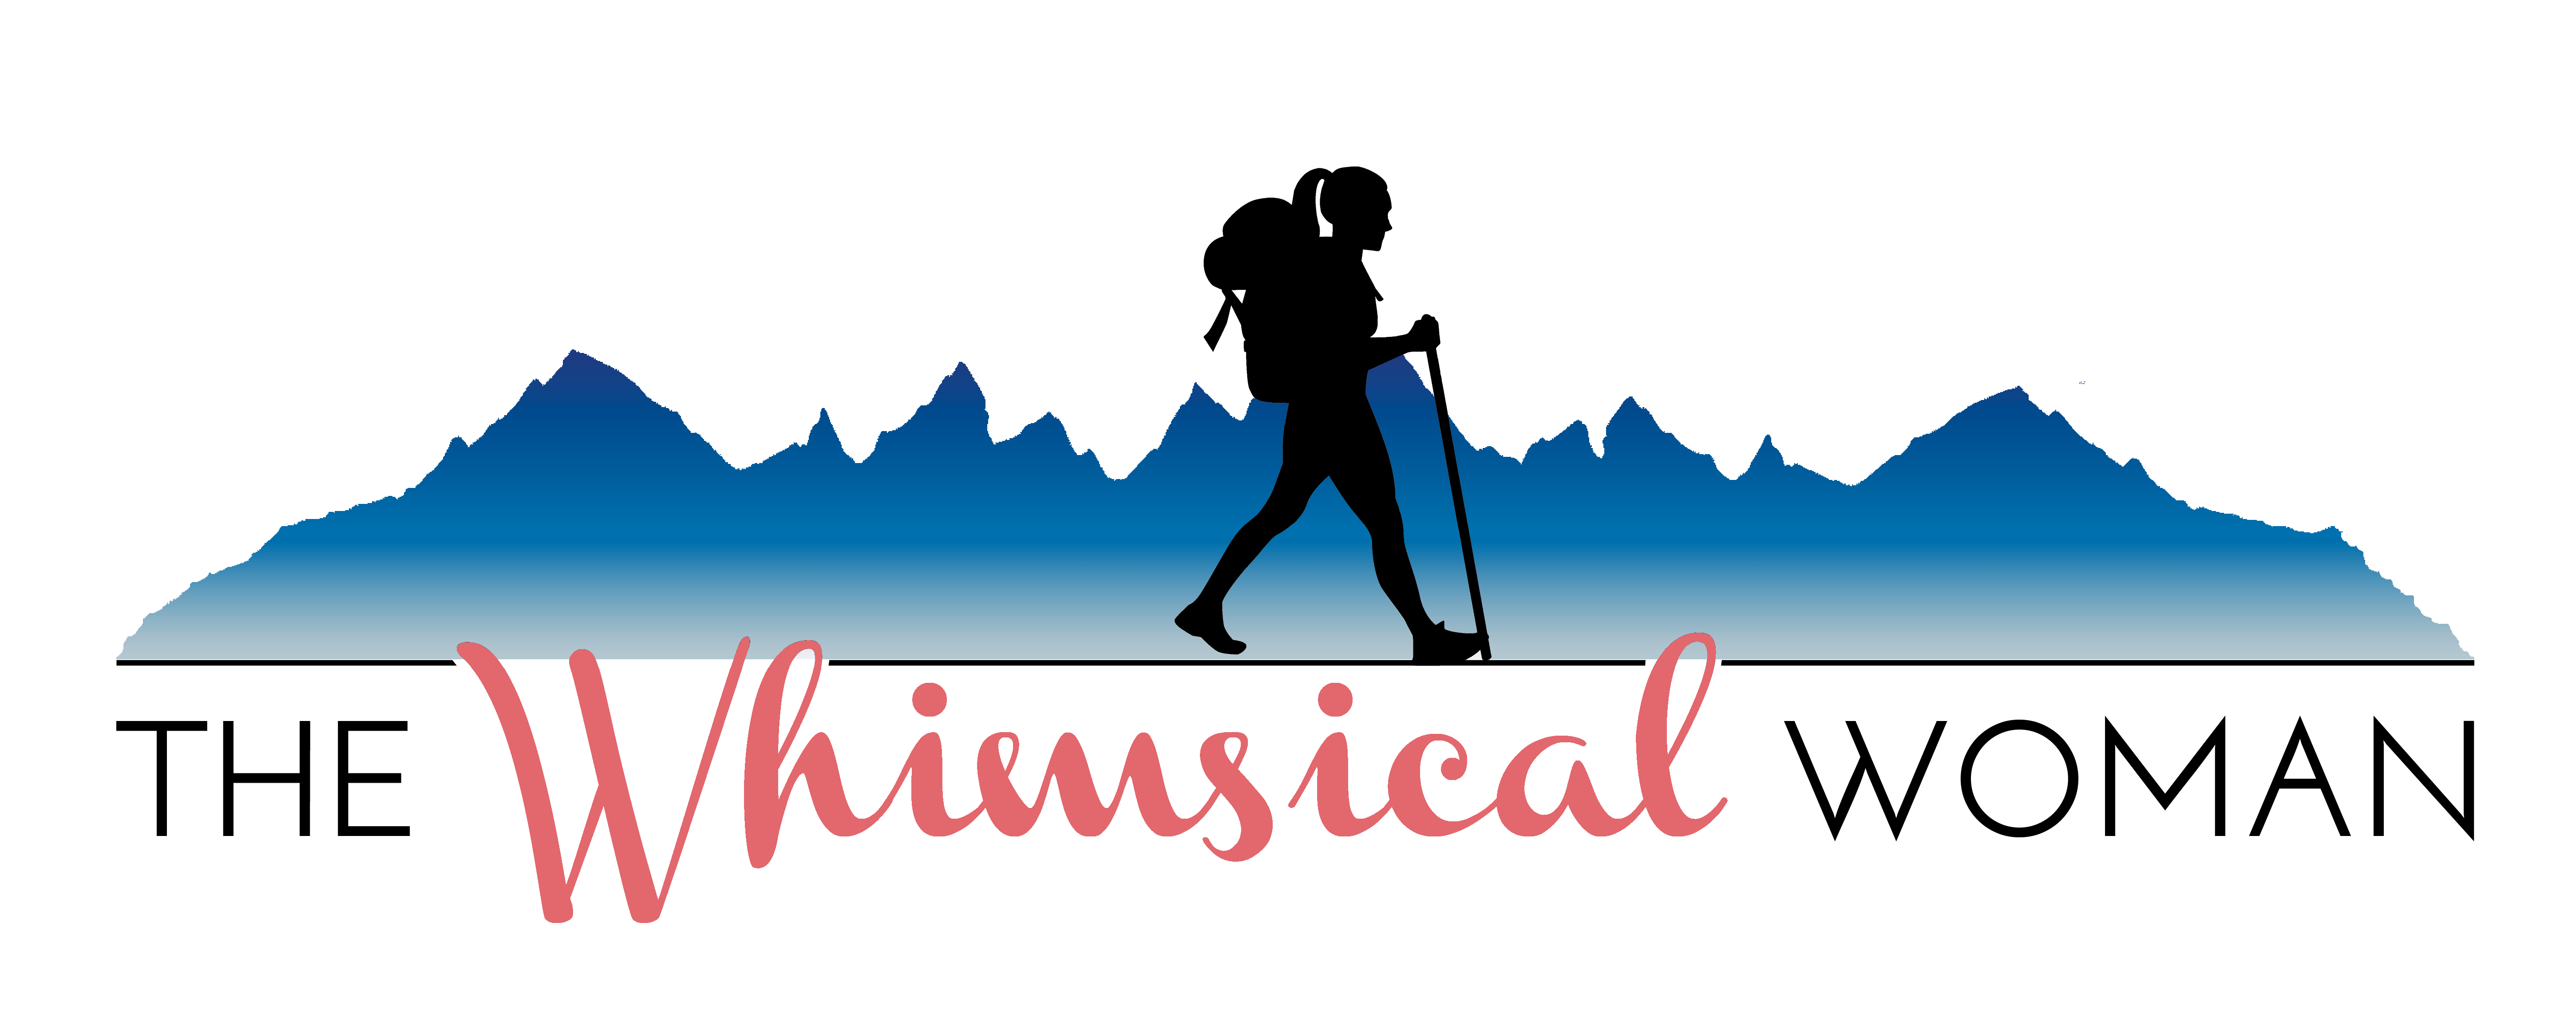 The Whimsical Woman